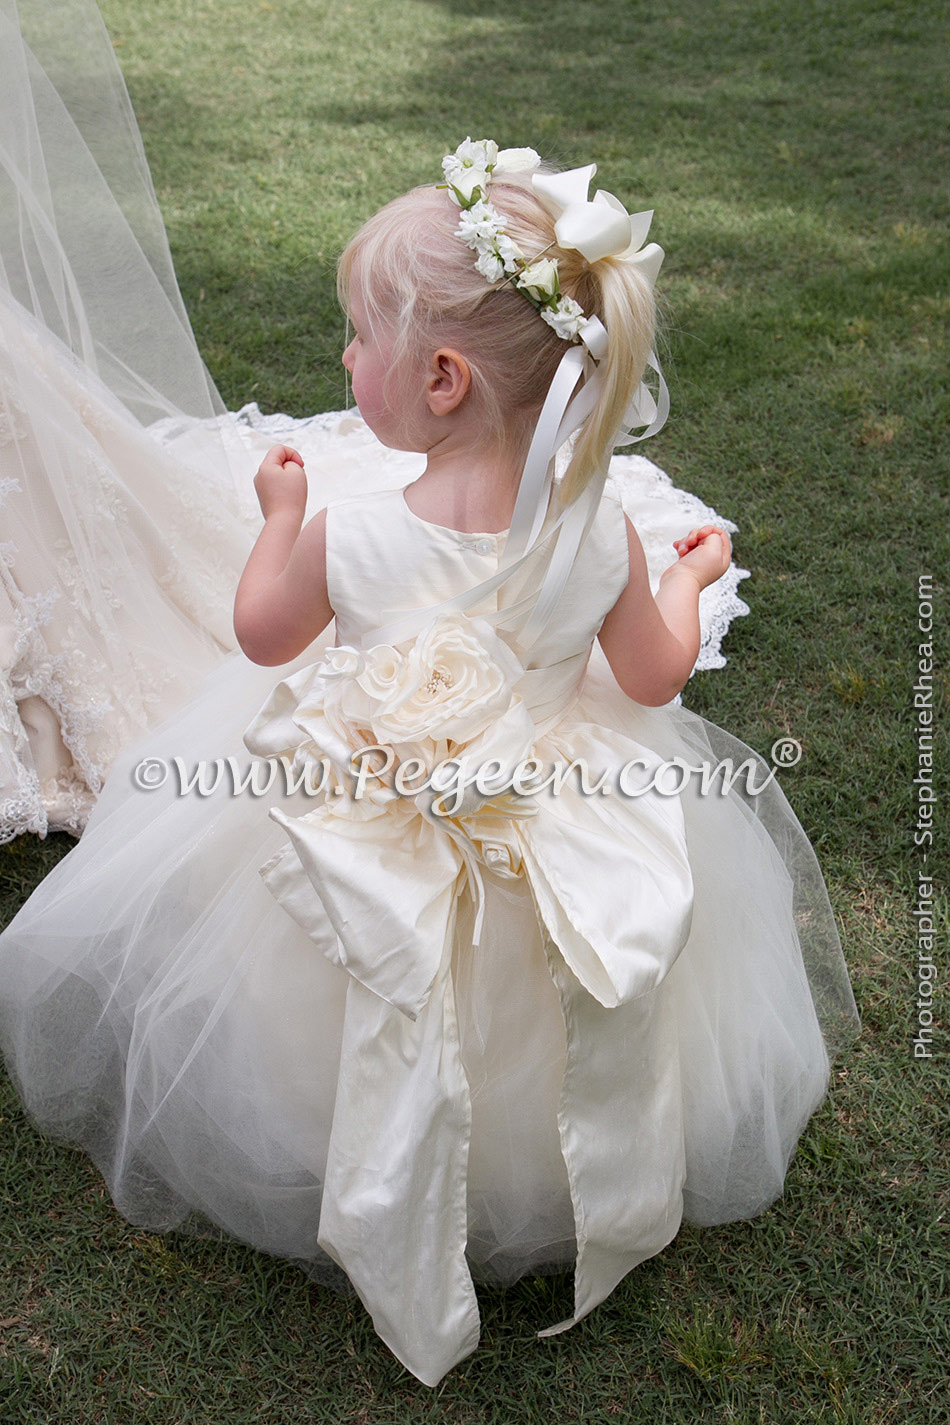 2014 southern wedding flower girl dresses of the year for Dresses for girls wedding